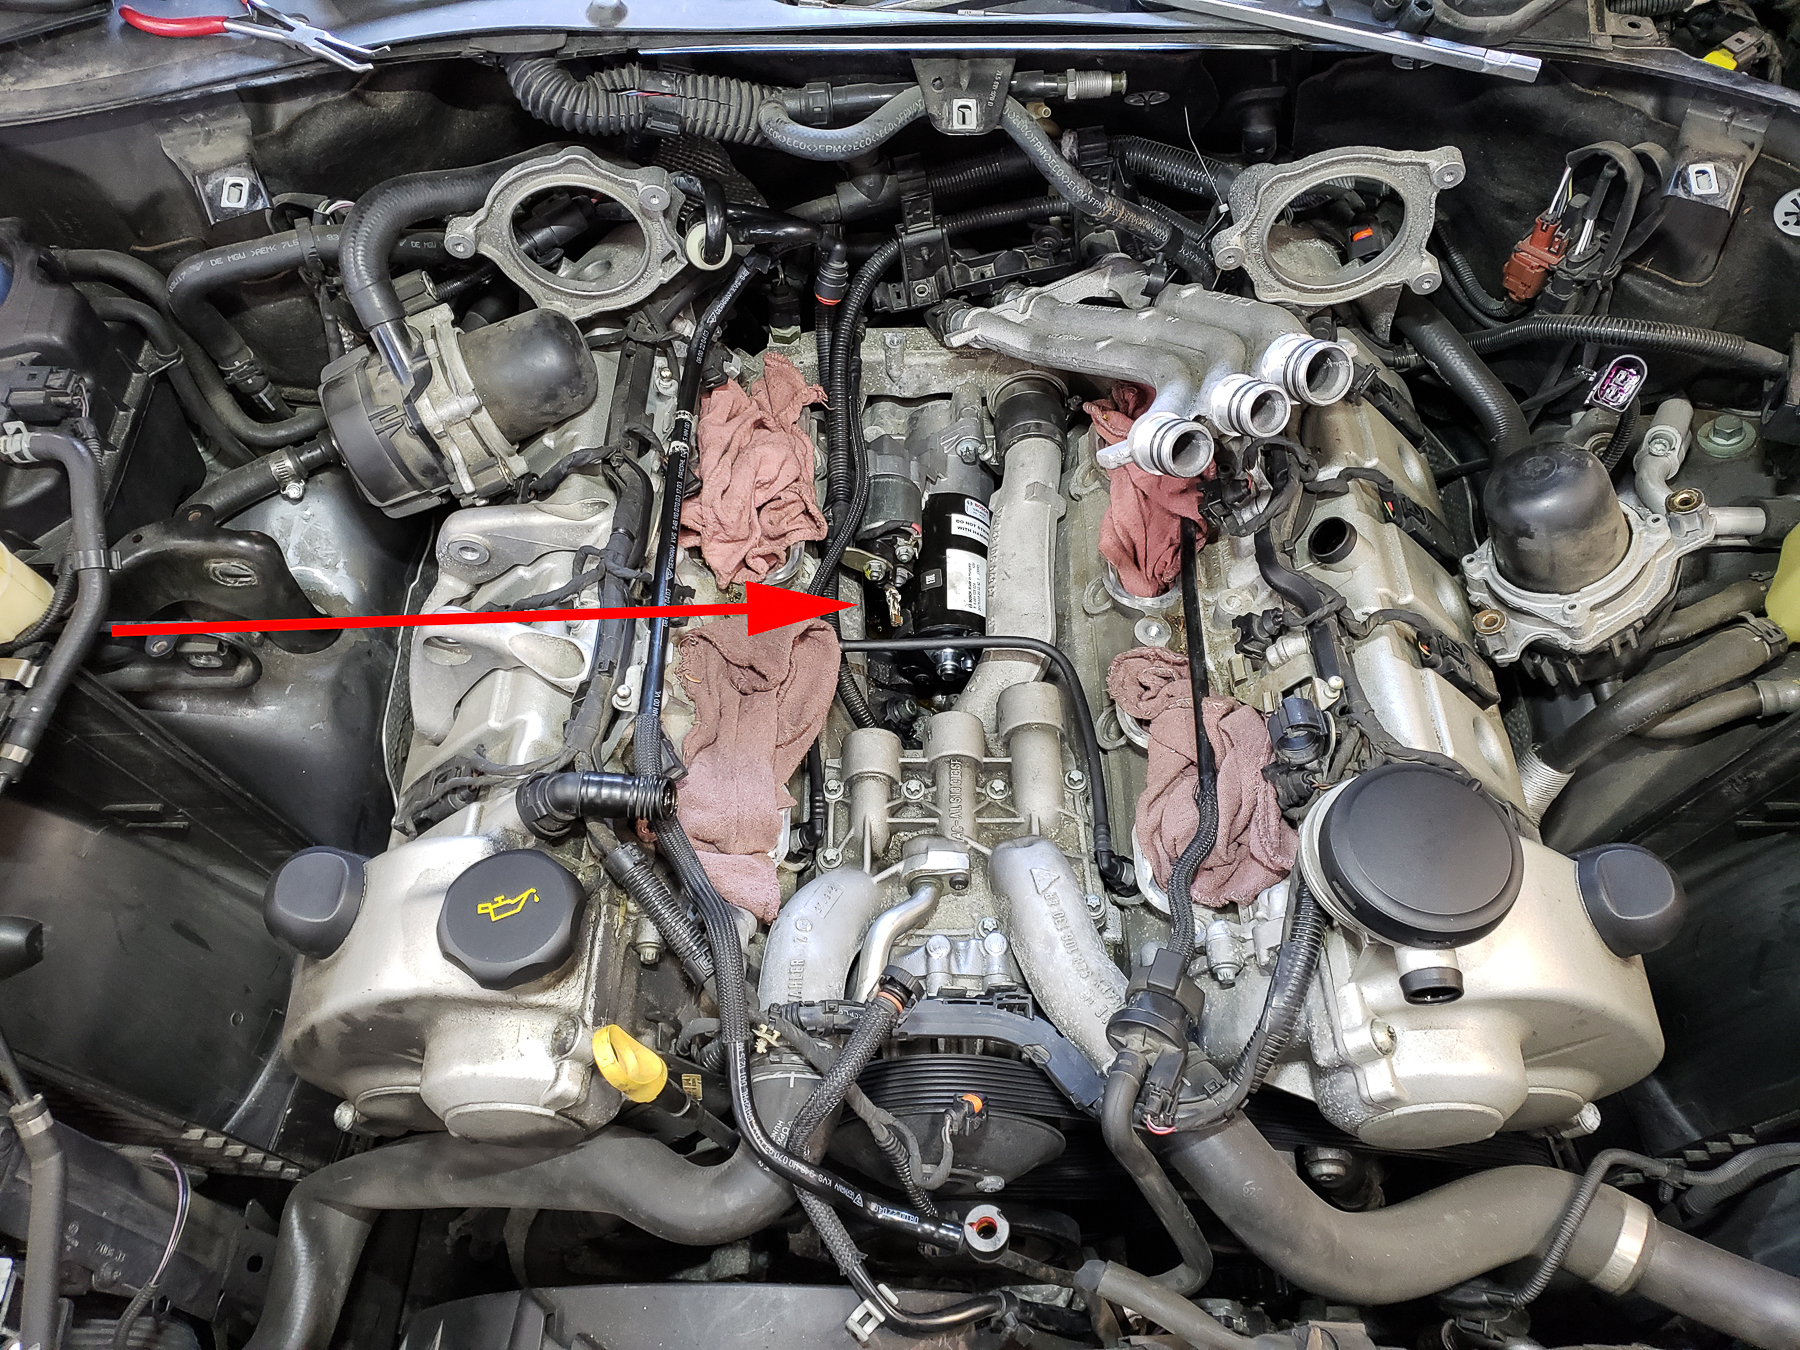 There S Our Cayenne 2004 Older Model Of Which Is The V8 Just Let Me Work My Way Through These Pictures Here So